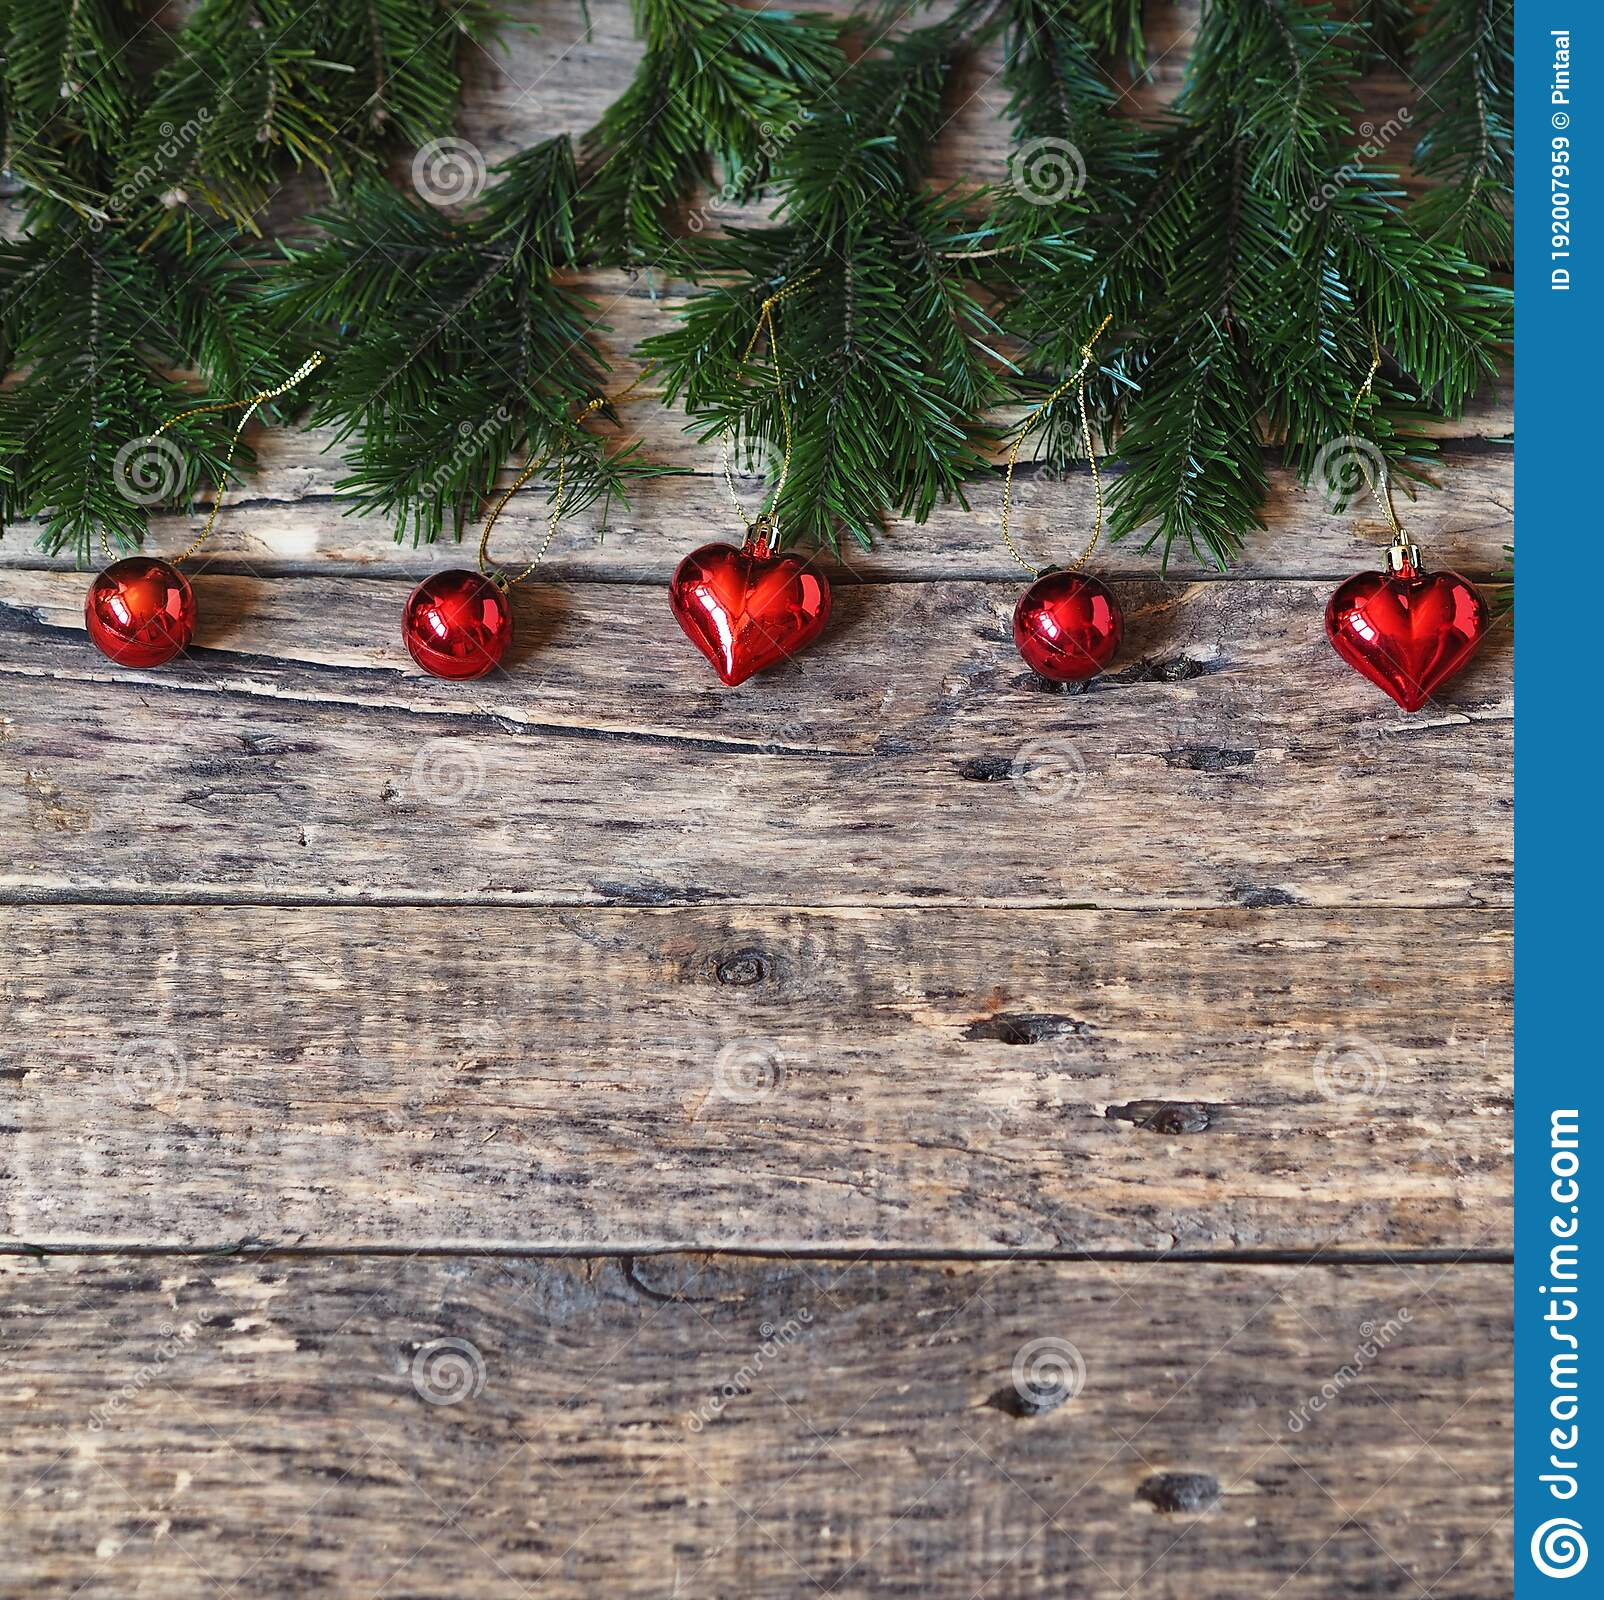 Merry Christmas And Happy New Year Spruce Branches With Christmas Tree Decorations Are Laid Out On A Natural Wooden Background Stock Image Image Of Branch Border 192007959